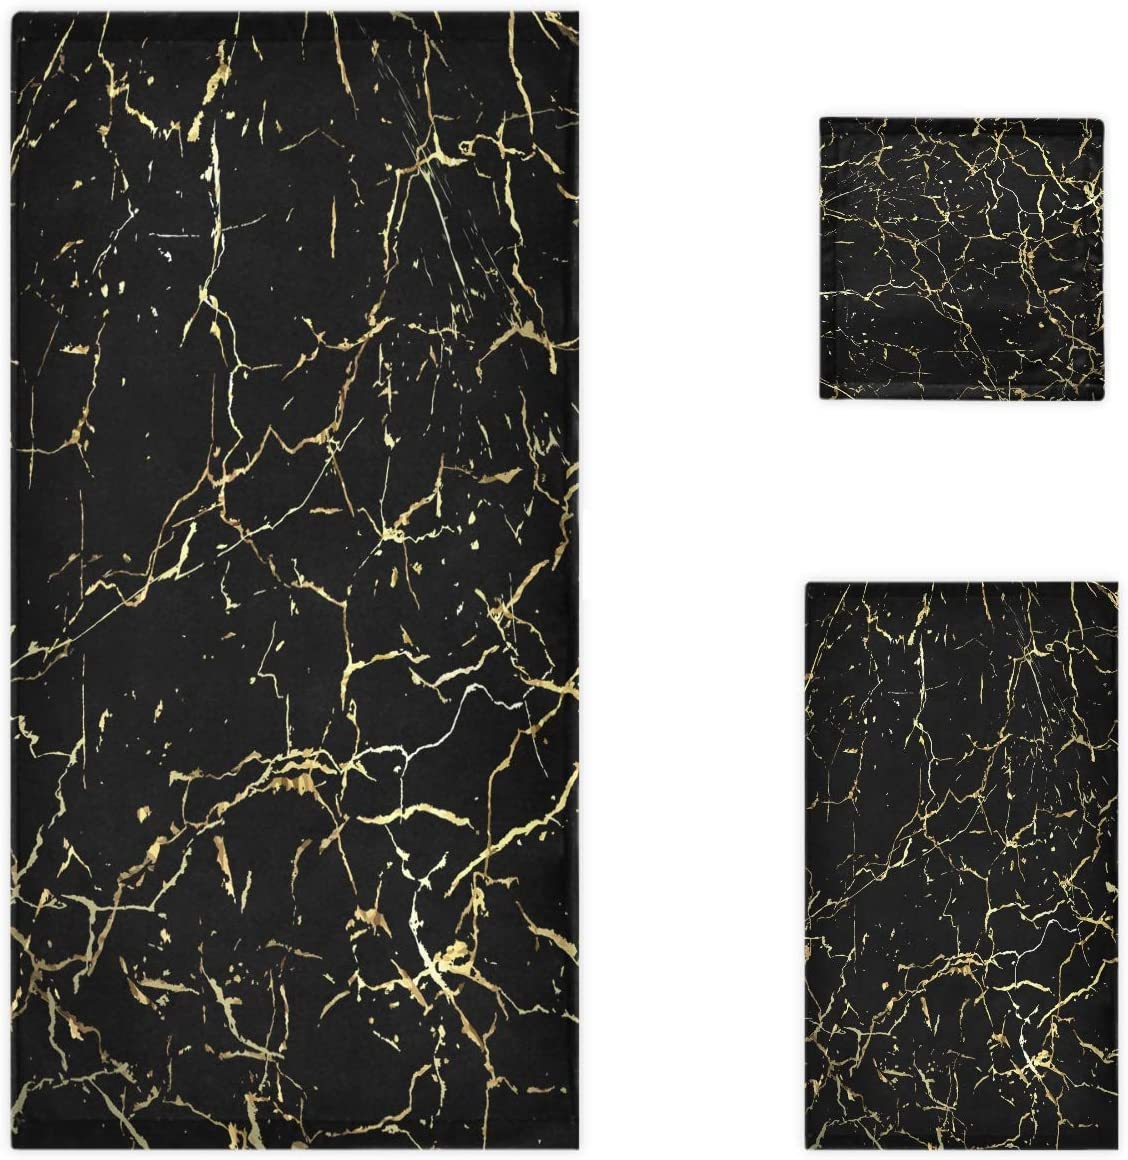 Gym and Spa Hotel Naanle 3D Stylish Gold Marbling Texture Print Soft Bath Towel Large Hand Towels Multipurpose for Bathroom 16 x 30,Black Floral